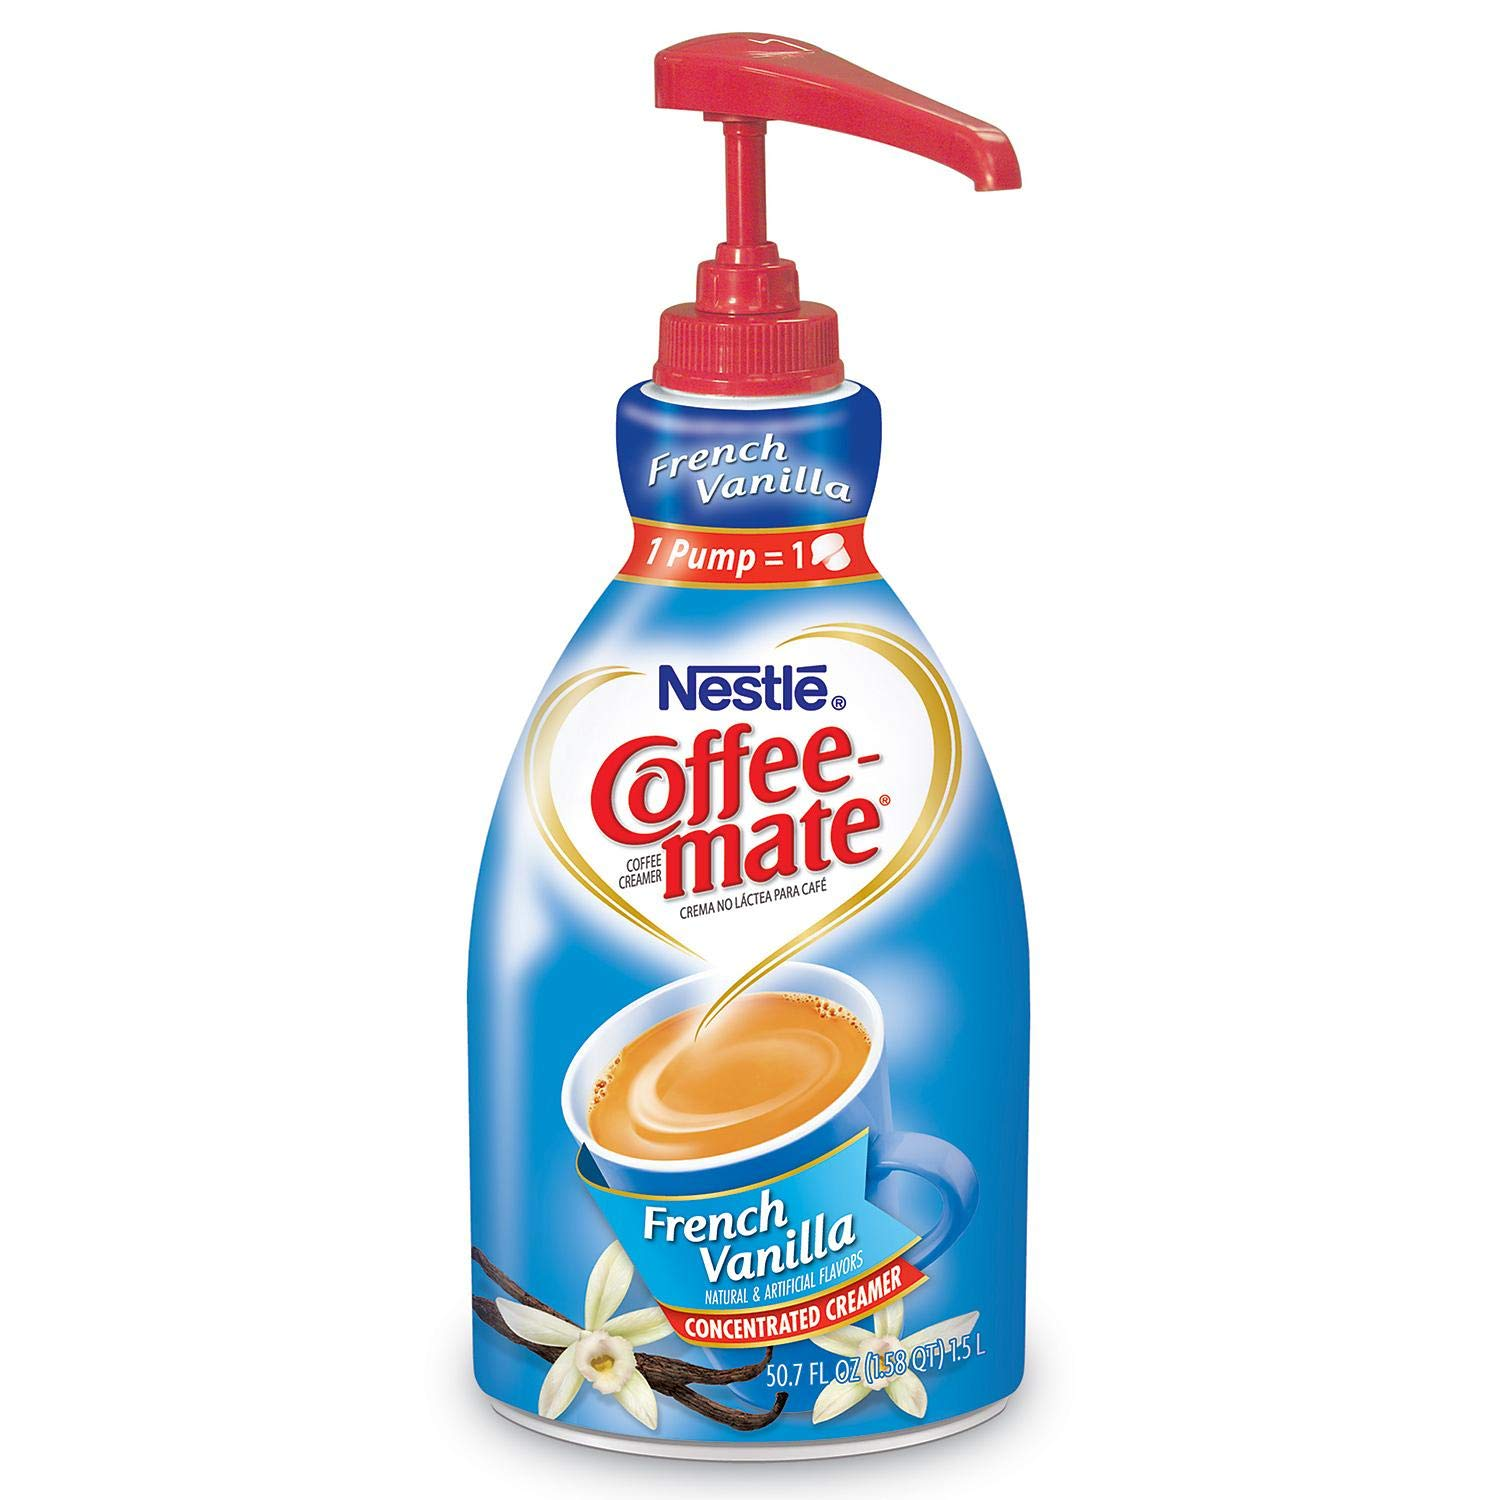 NESTLE COFFEE-MATE Coffee Creamer, French Vanilla, 1.5L liquid pump bottle, Special Size 2Pack by Nestle Coffee Mate